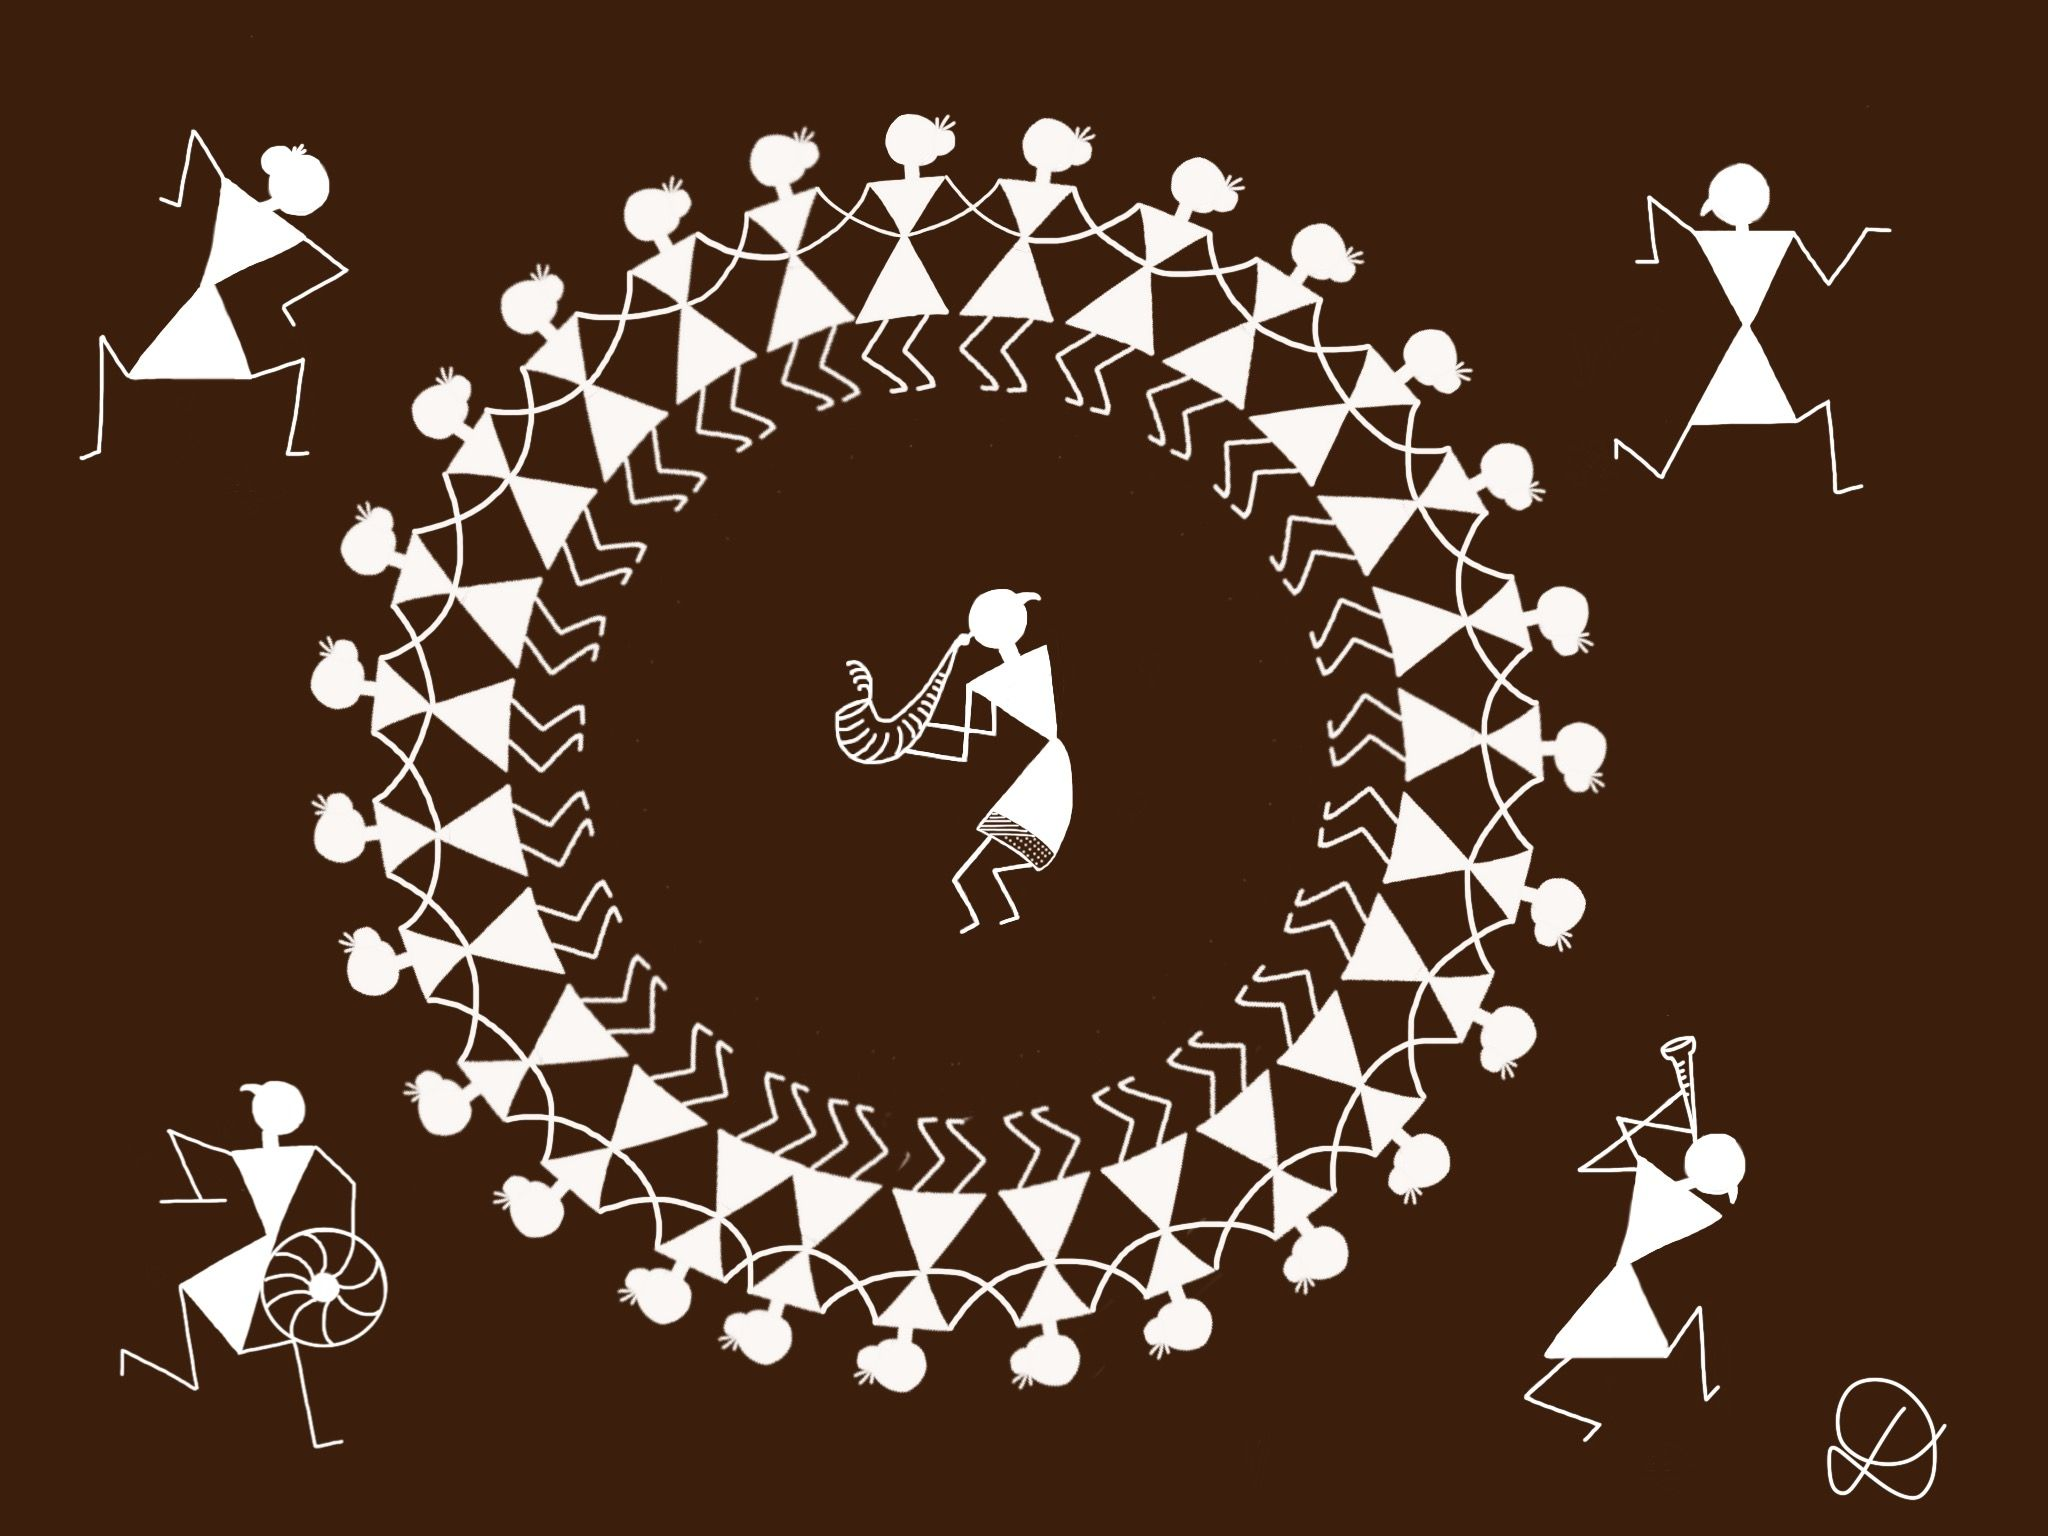 Digital Illustration inspired by Warli painting. Warli painting is a style of tribal art from India.